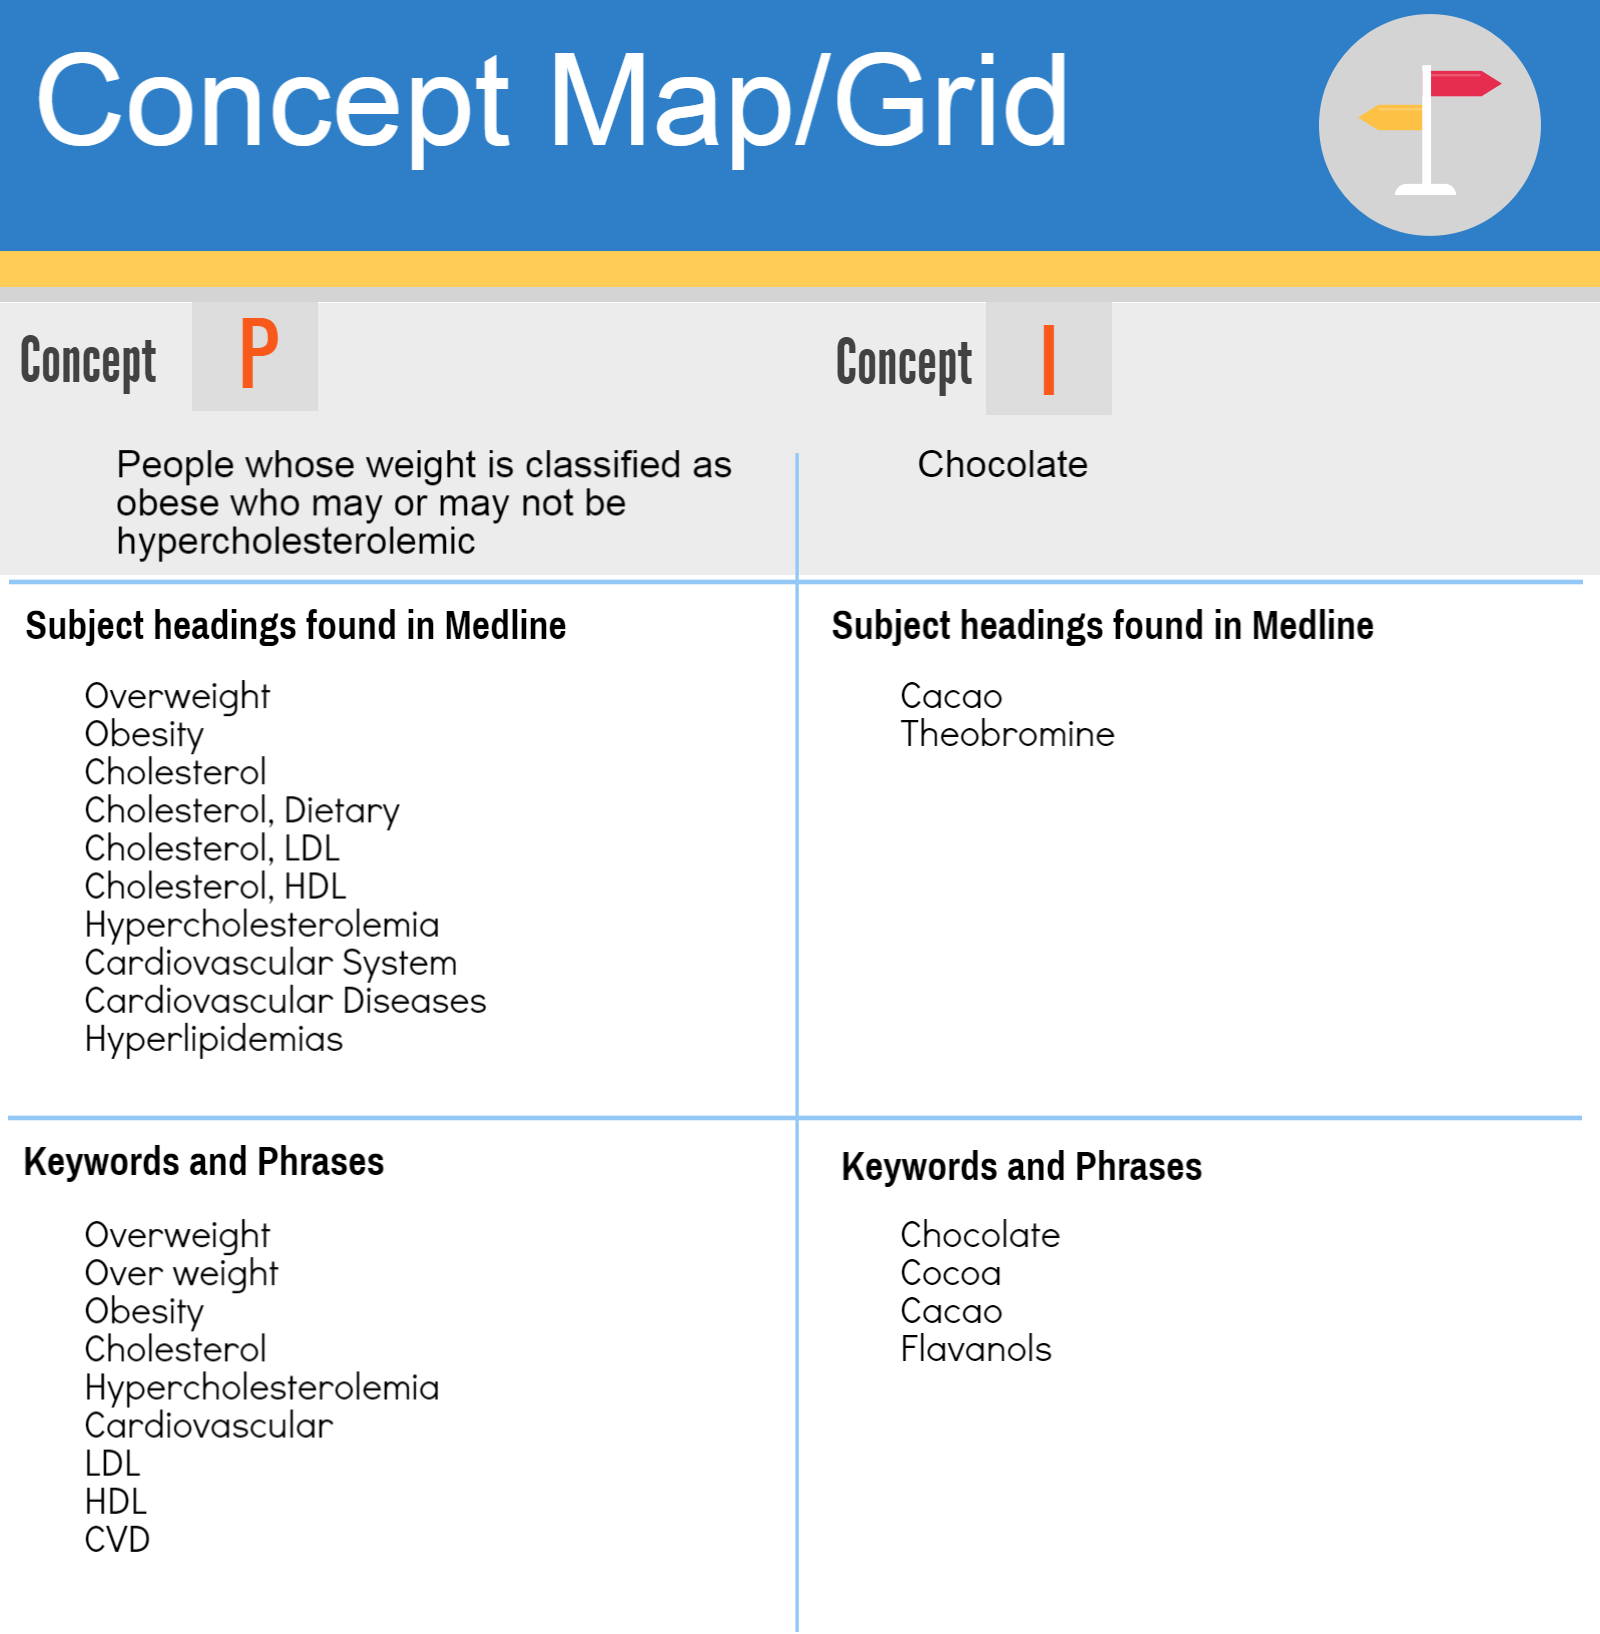 Example of a concept map/grid